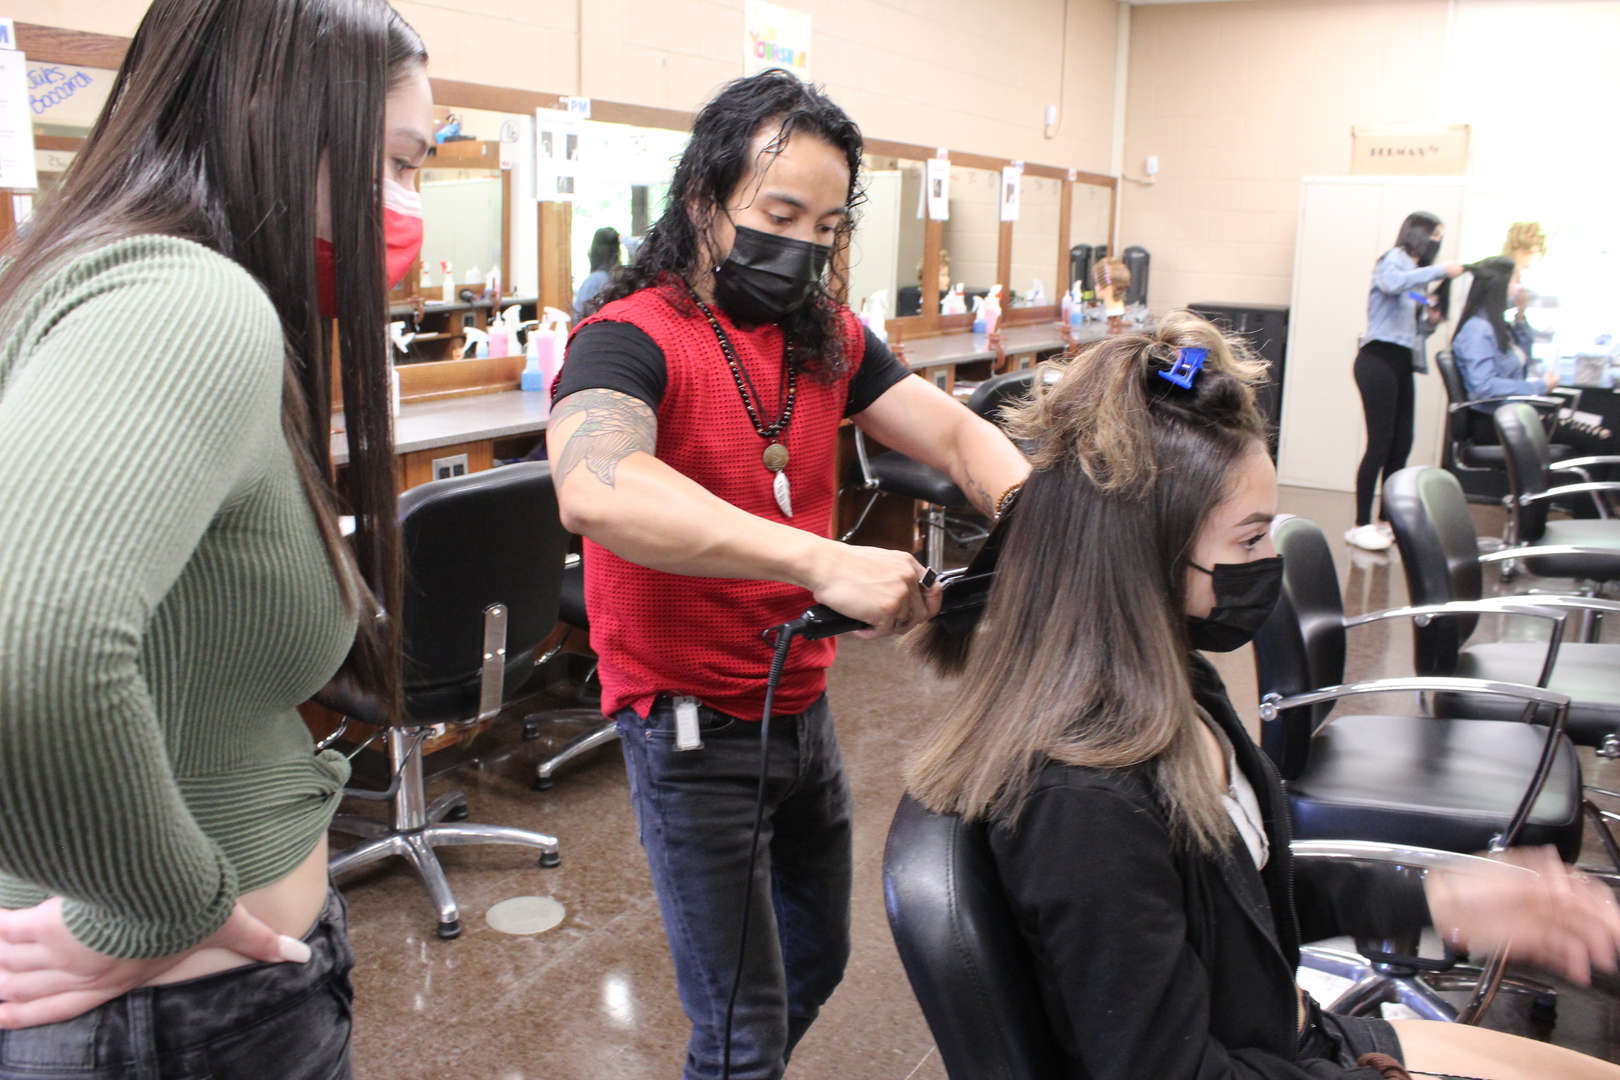 Man instructs student on how to use a flatiron tool to straighten hair